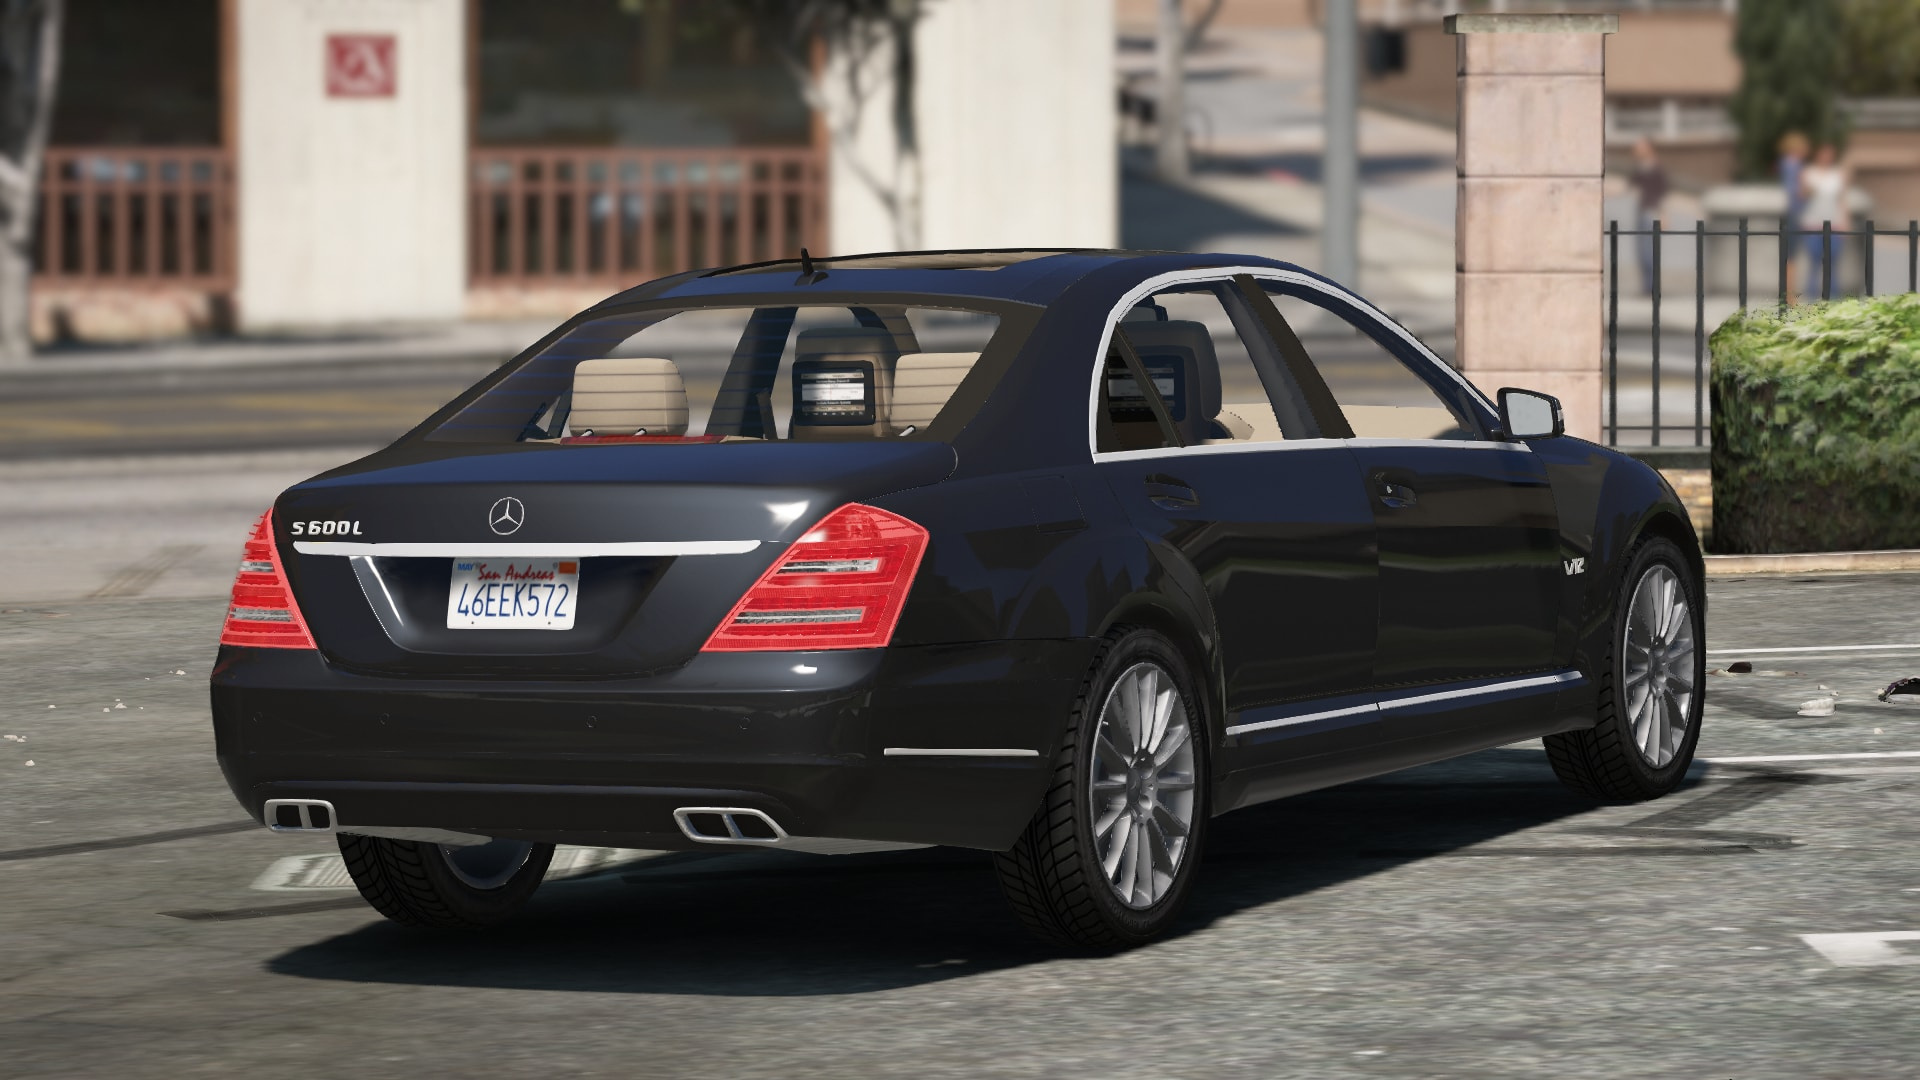 Mercedes benz s 600l 2011 gta5 for Mercedes benz gta